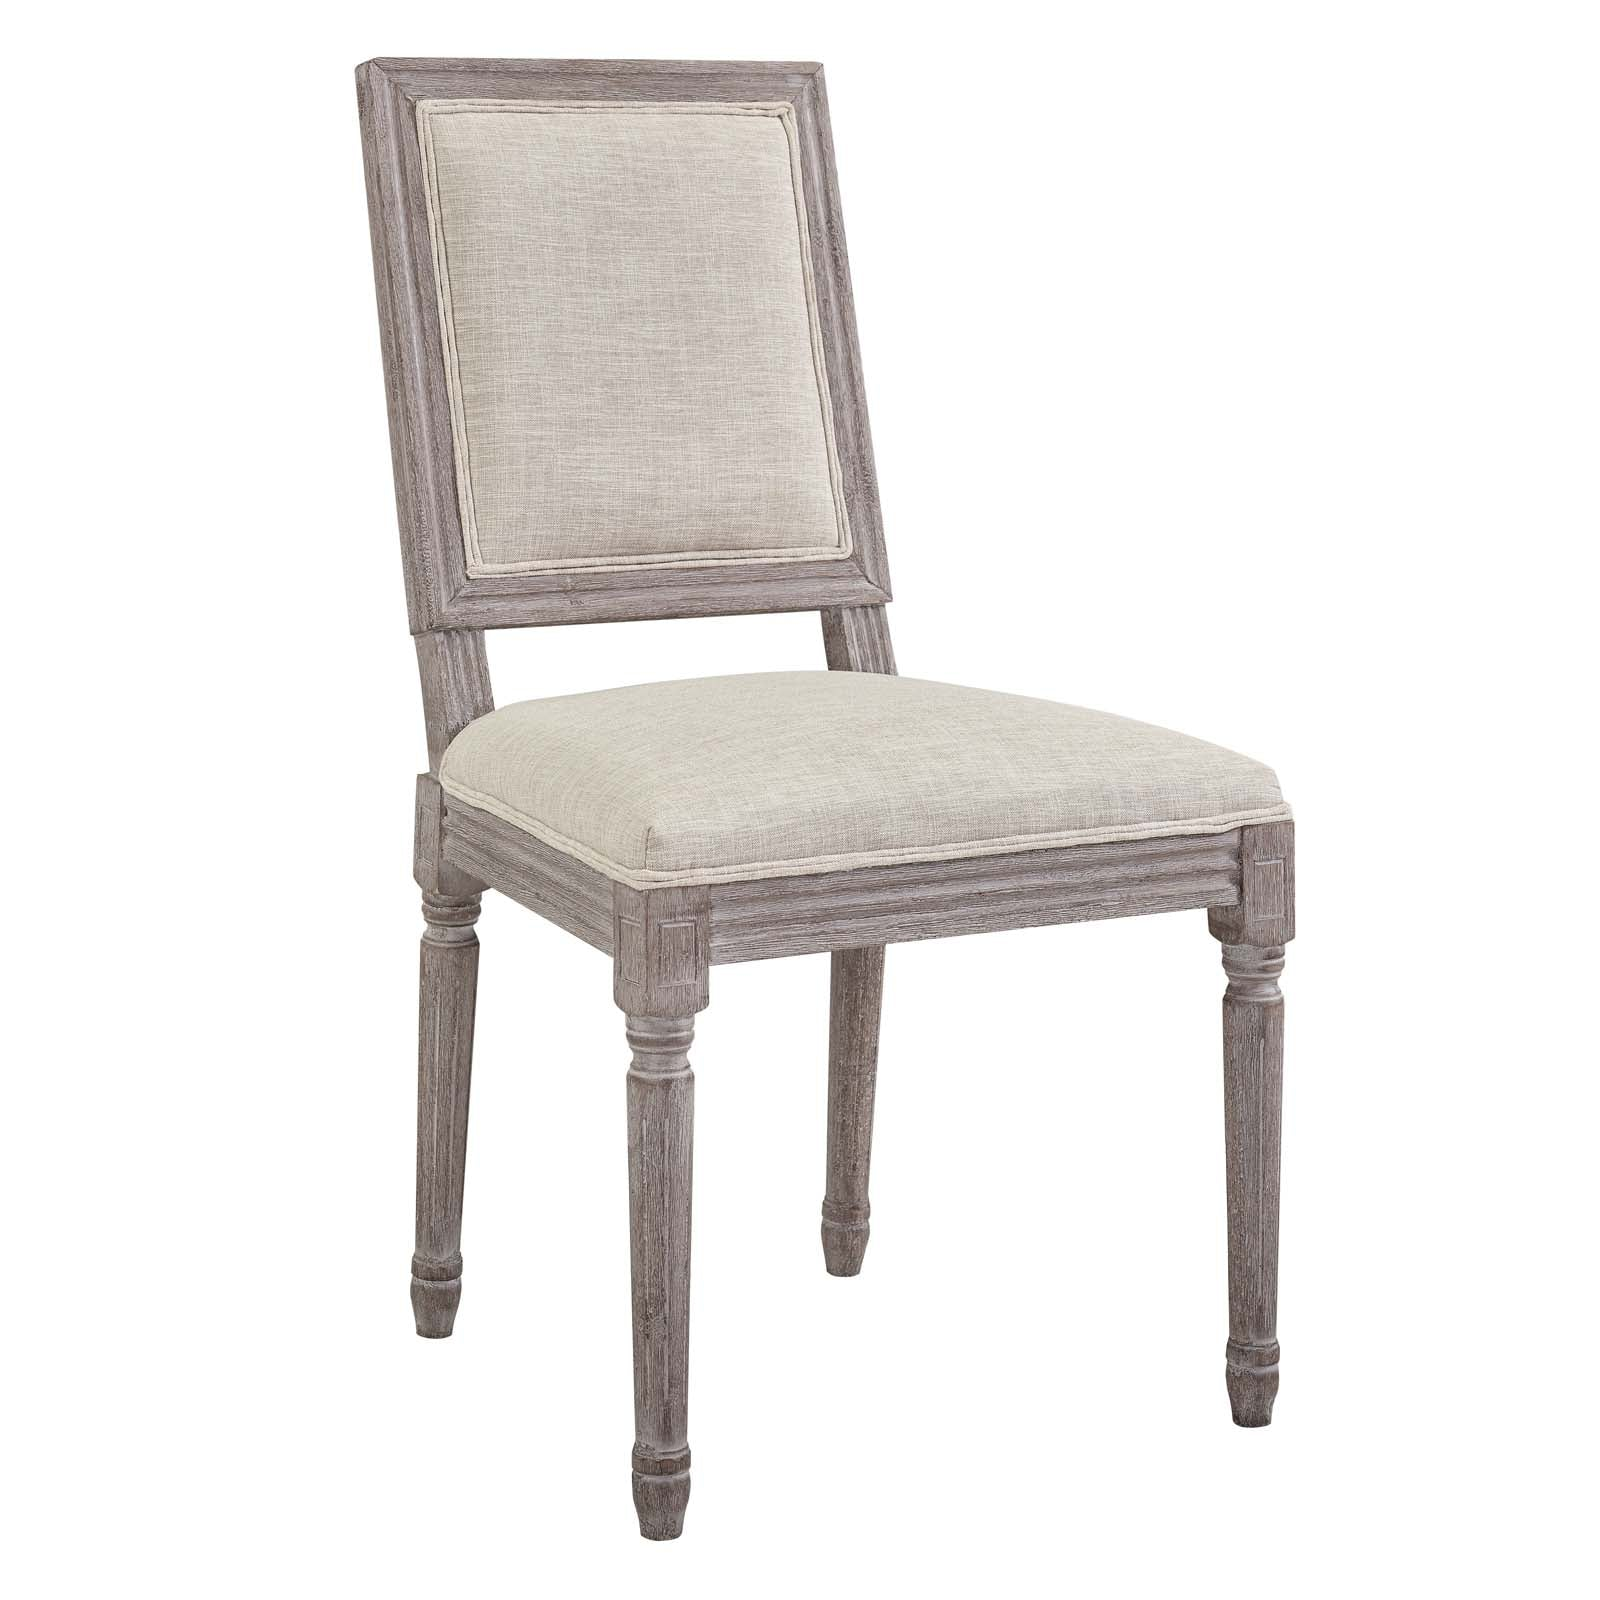 Modway eei 2682 bei court vintage french upholstered fabric dining side chair beige